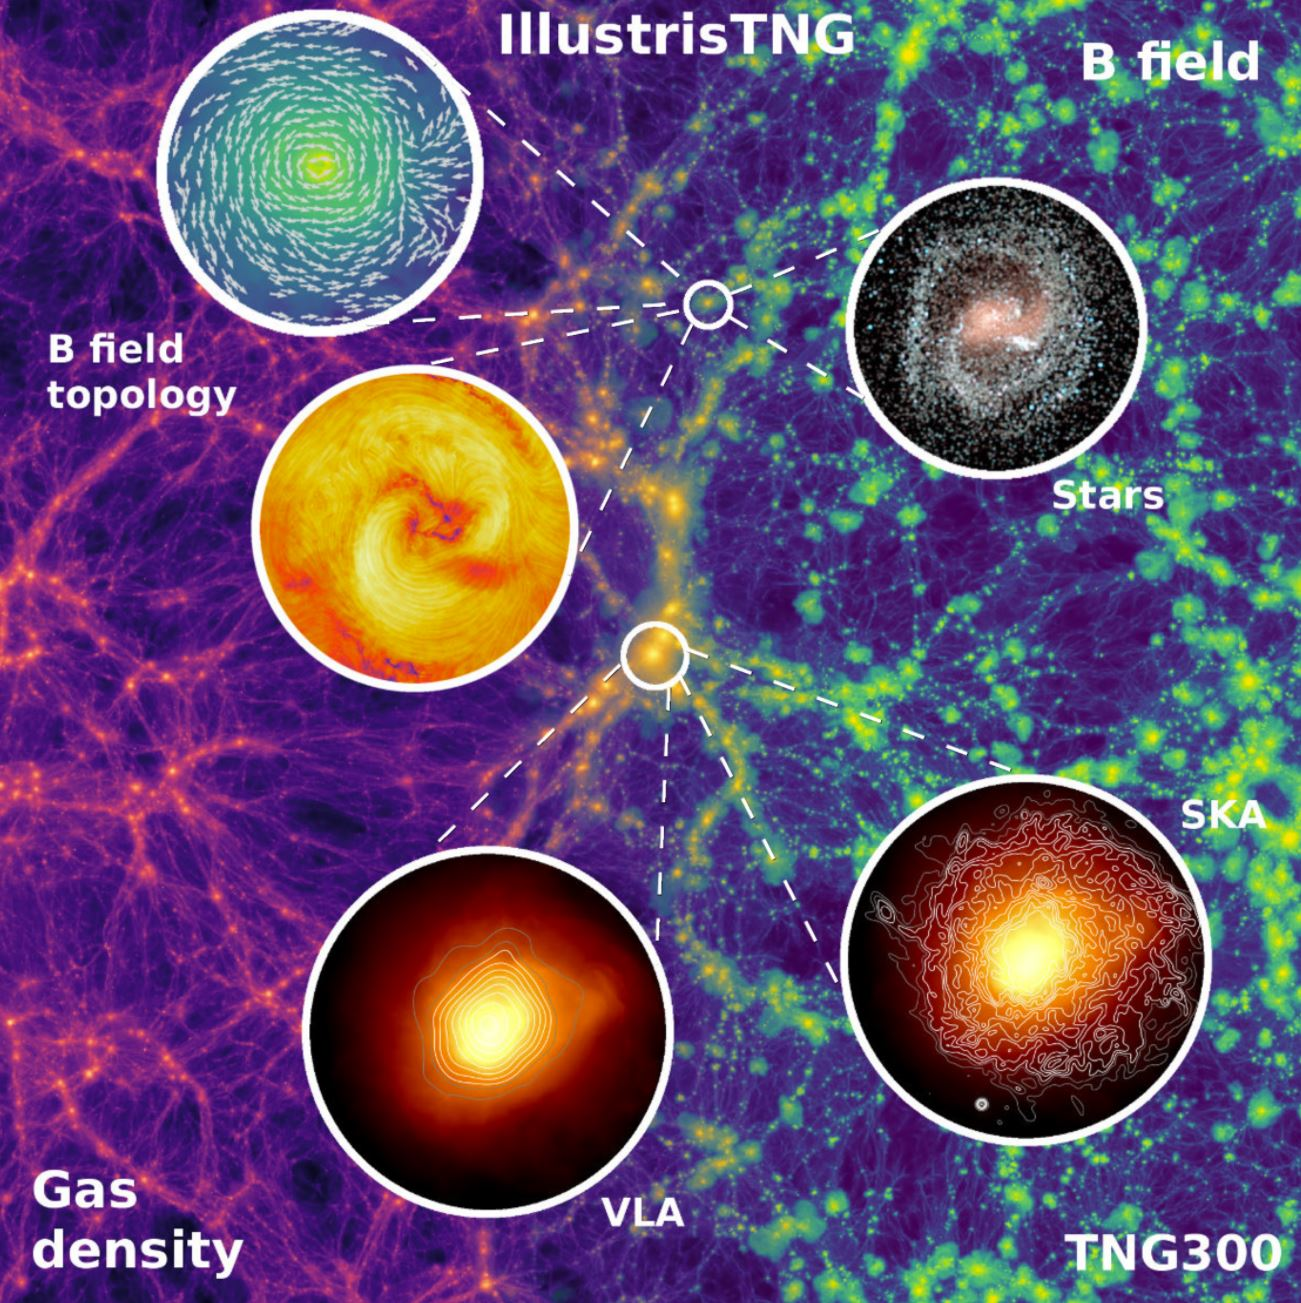 Gas density (left) and magnetic field strength (right) centered on the most massive galaxy cluster. - Image Credit:  Illustris Team